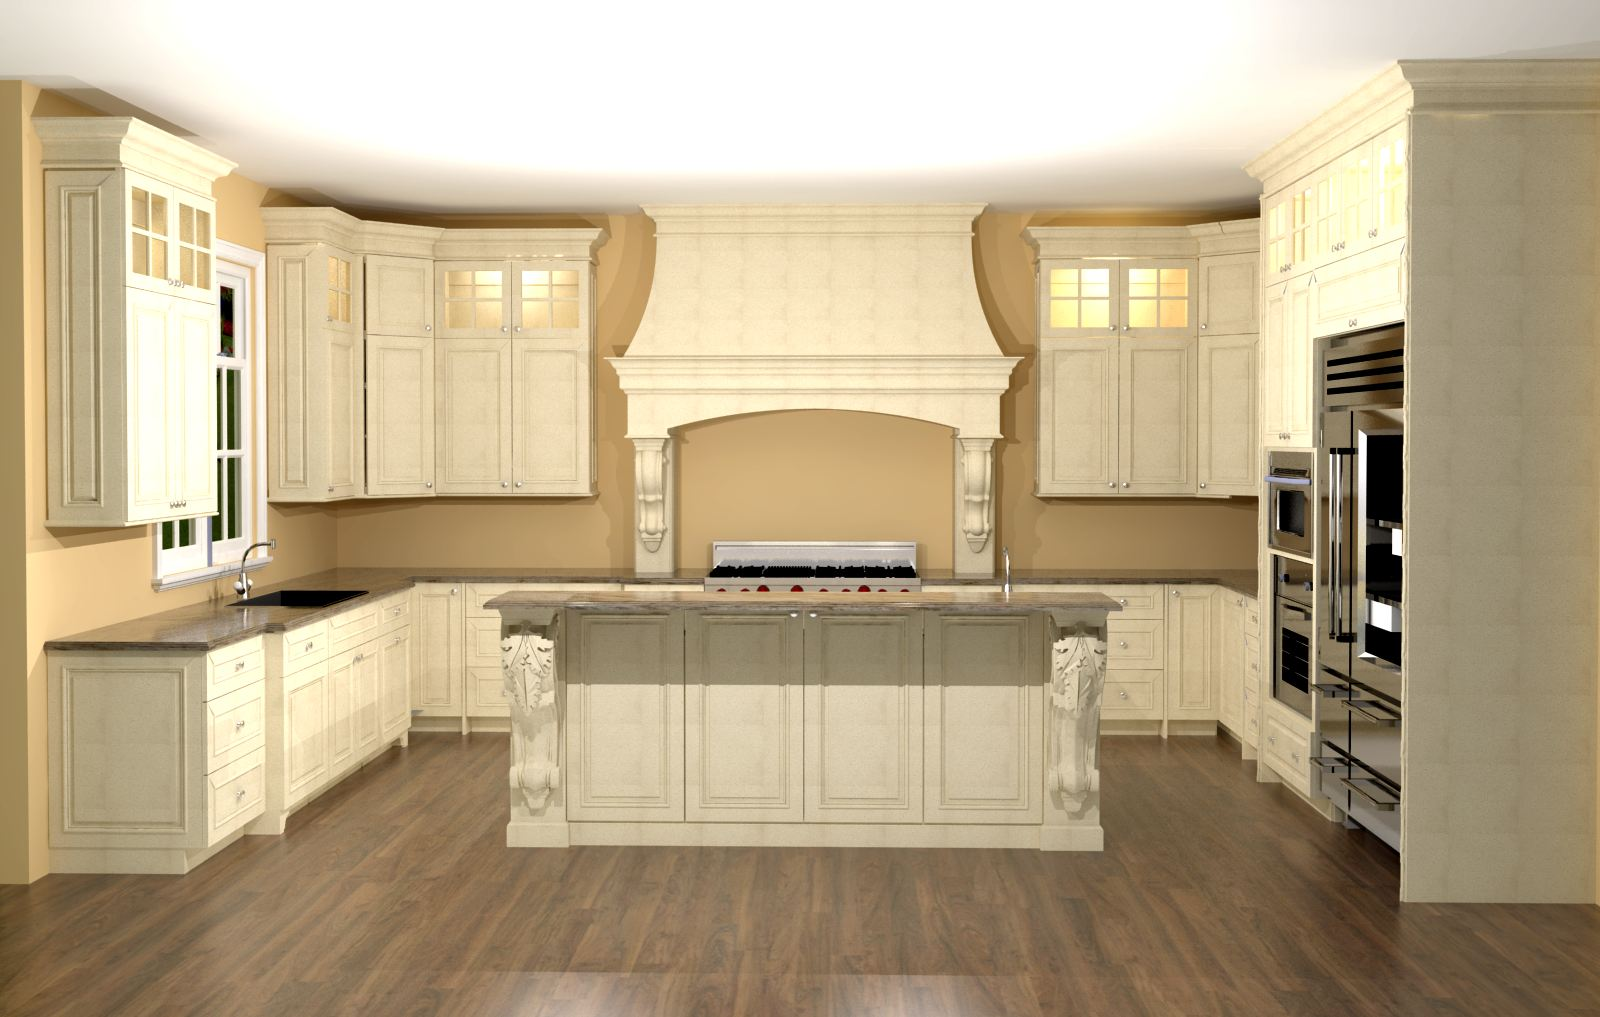 Large Kitchen With Custom Hood Features Large Enkeboll Corbels On Island